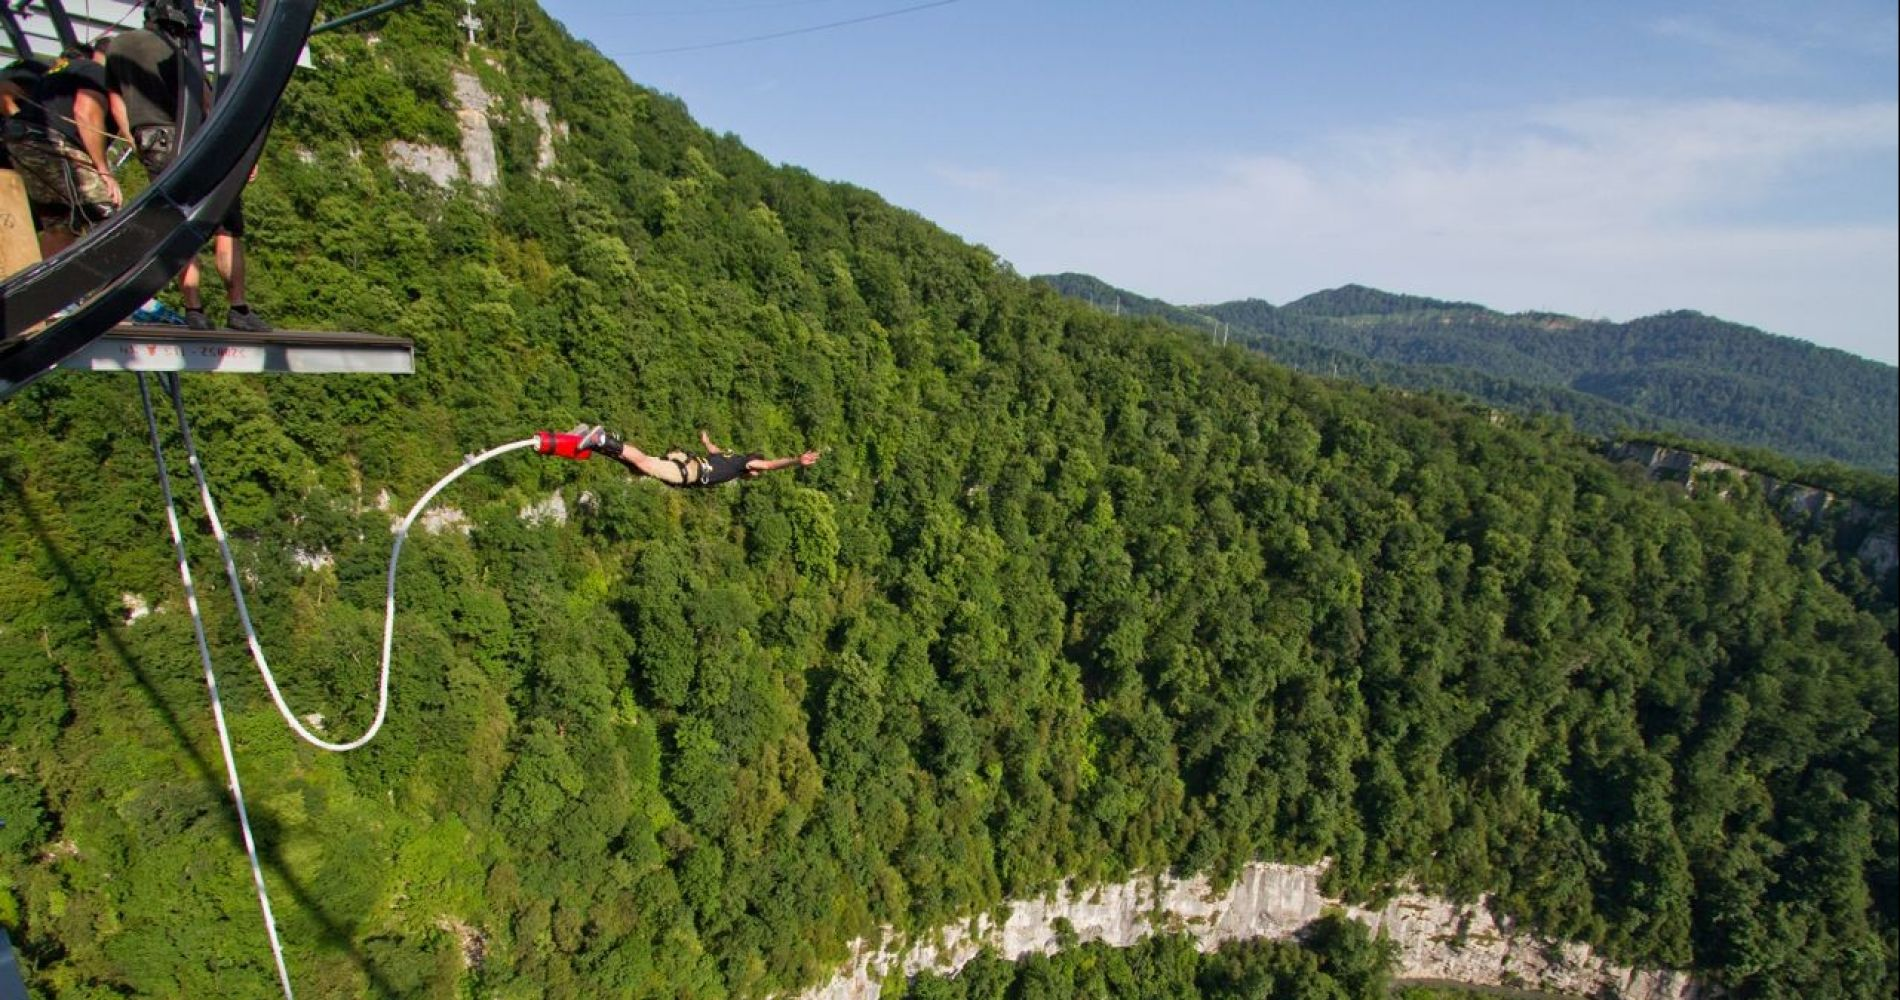 Bungy 207 over Mzymta Akhshtyr Valley